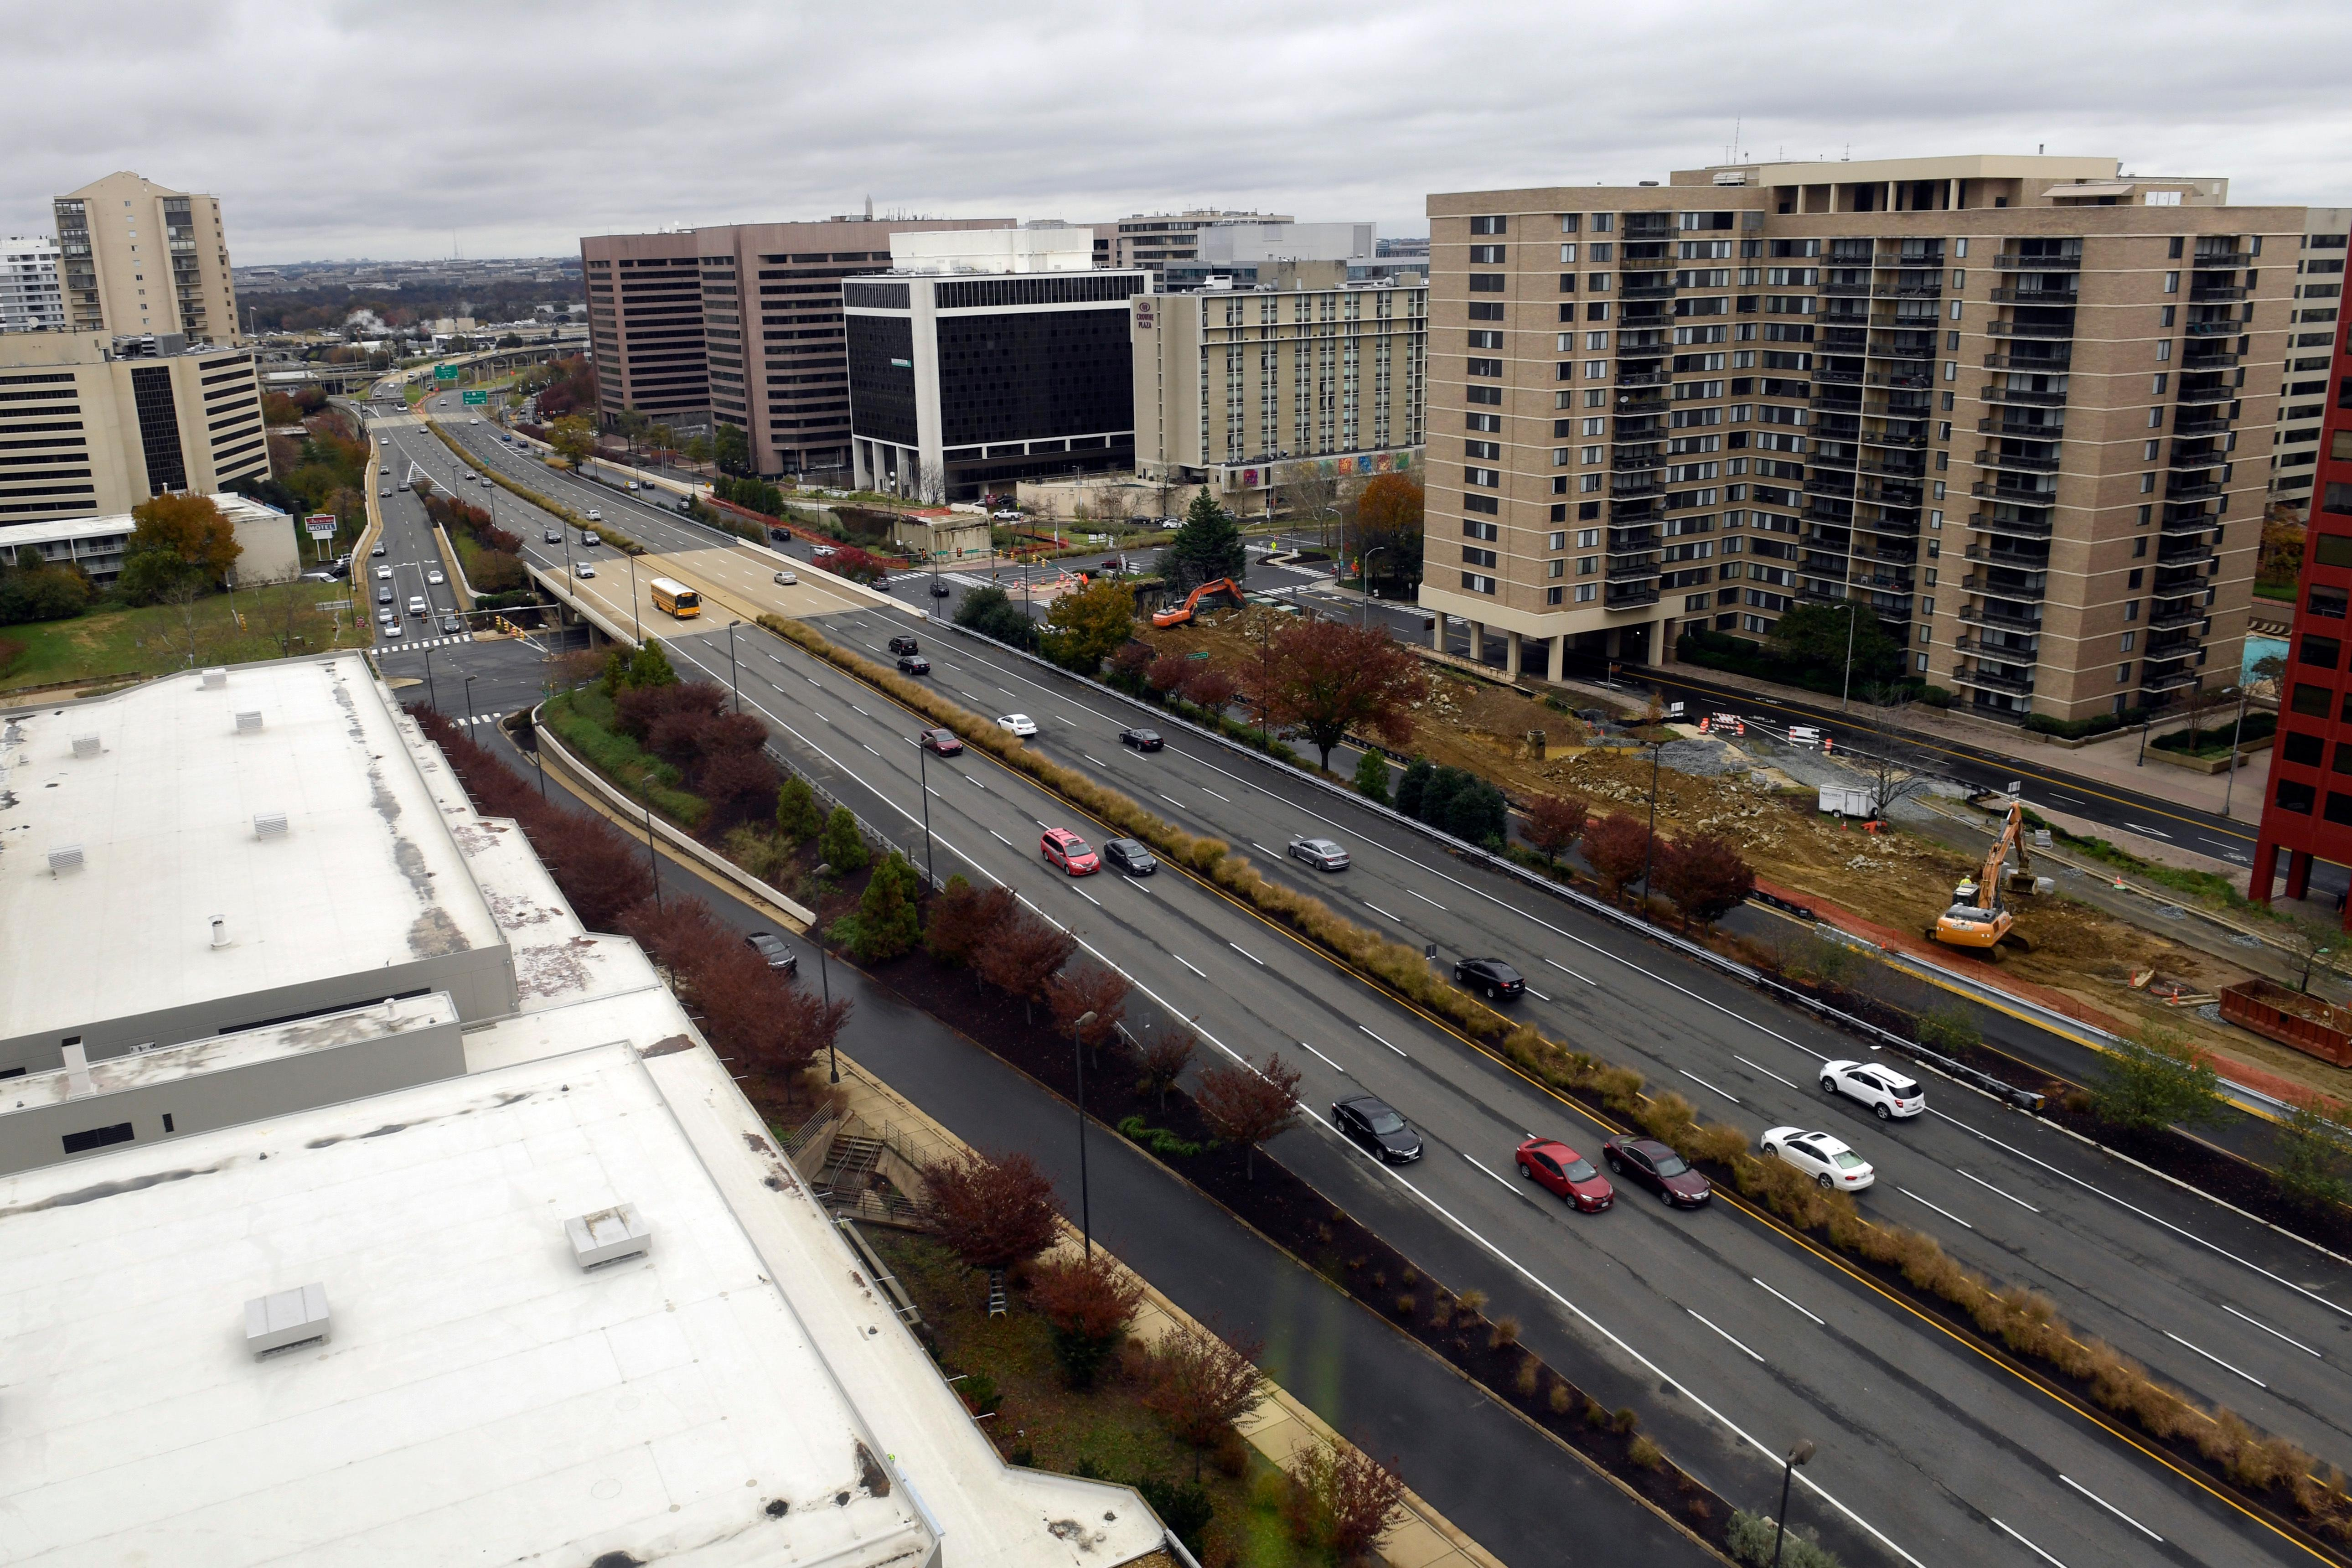 FILE- This Tuesday, Nov. 13, 2018, file photo shows a view of Crystal City, Va. On Tuesday, Nov. 13, Amazon said it will split its second headquarters between Long Island City in New York and Crystal City. (AP Photo/Susan Walsh, File)